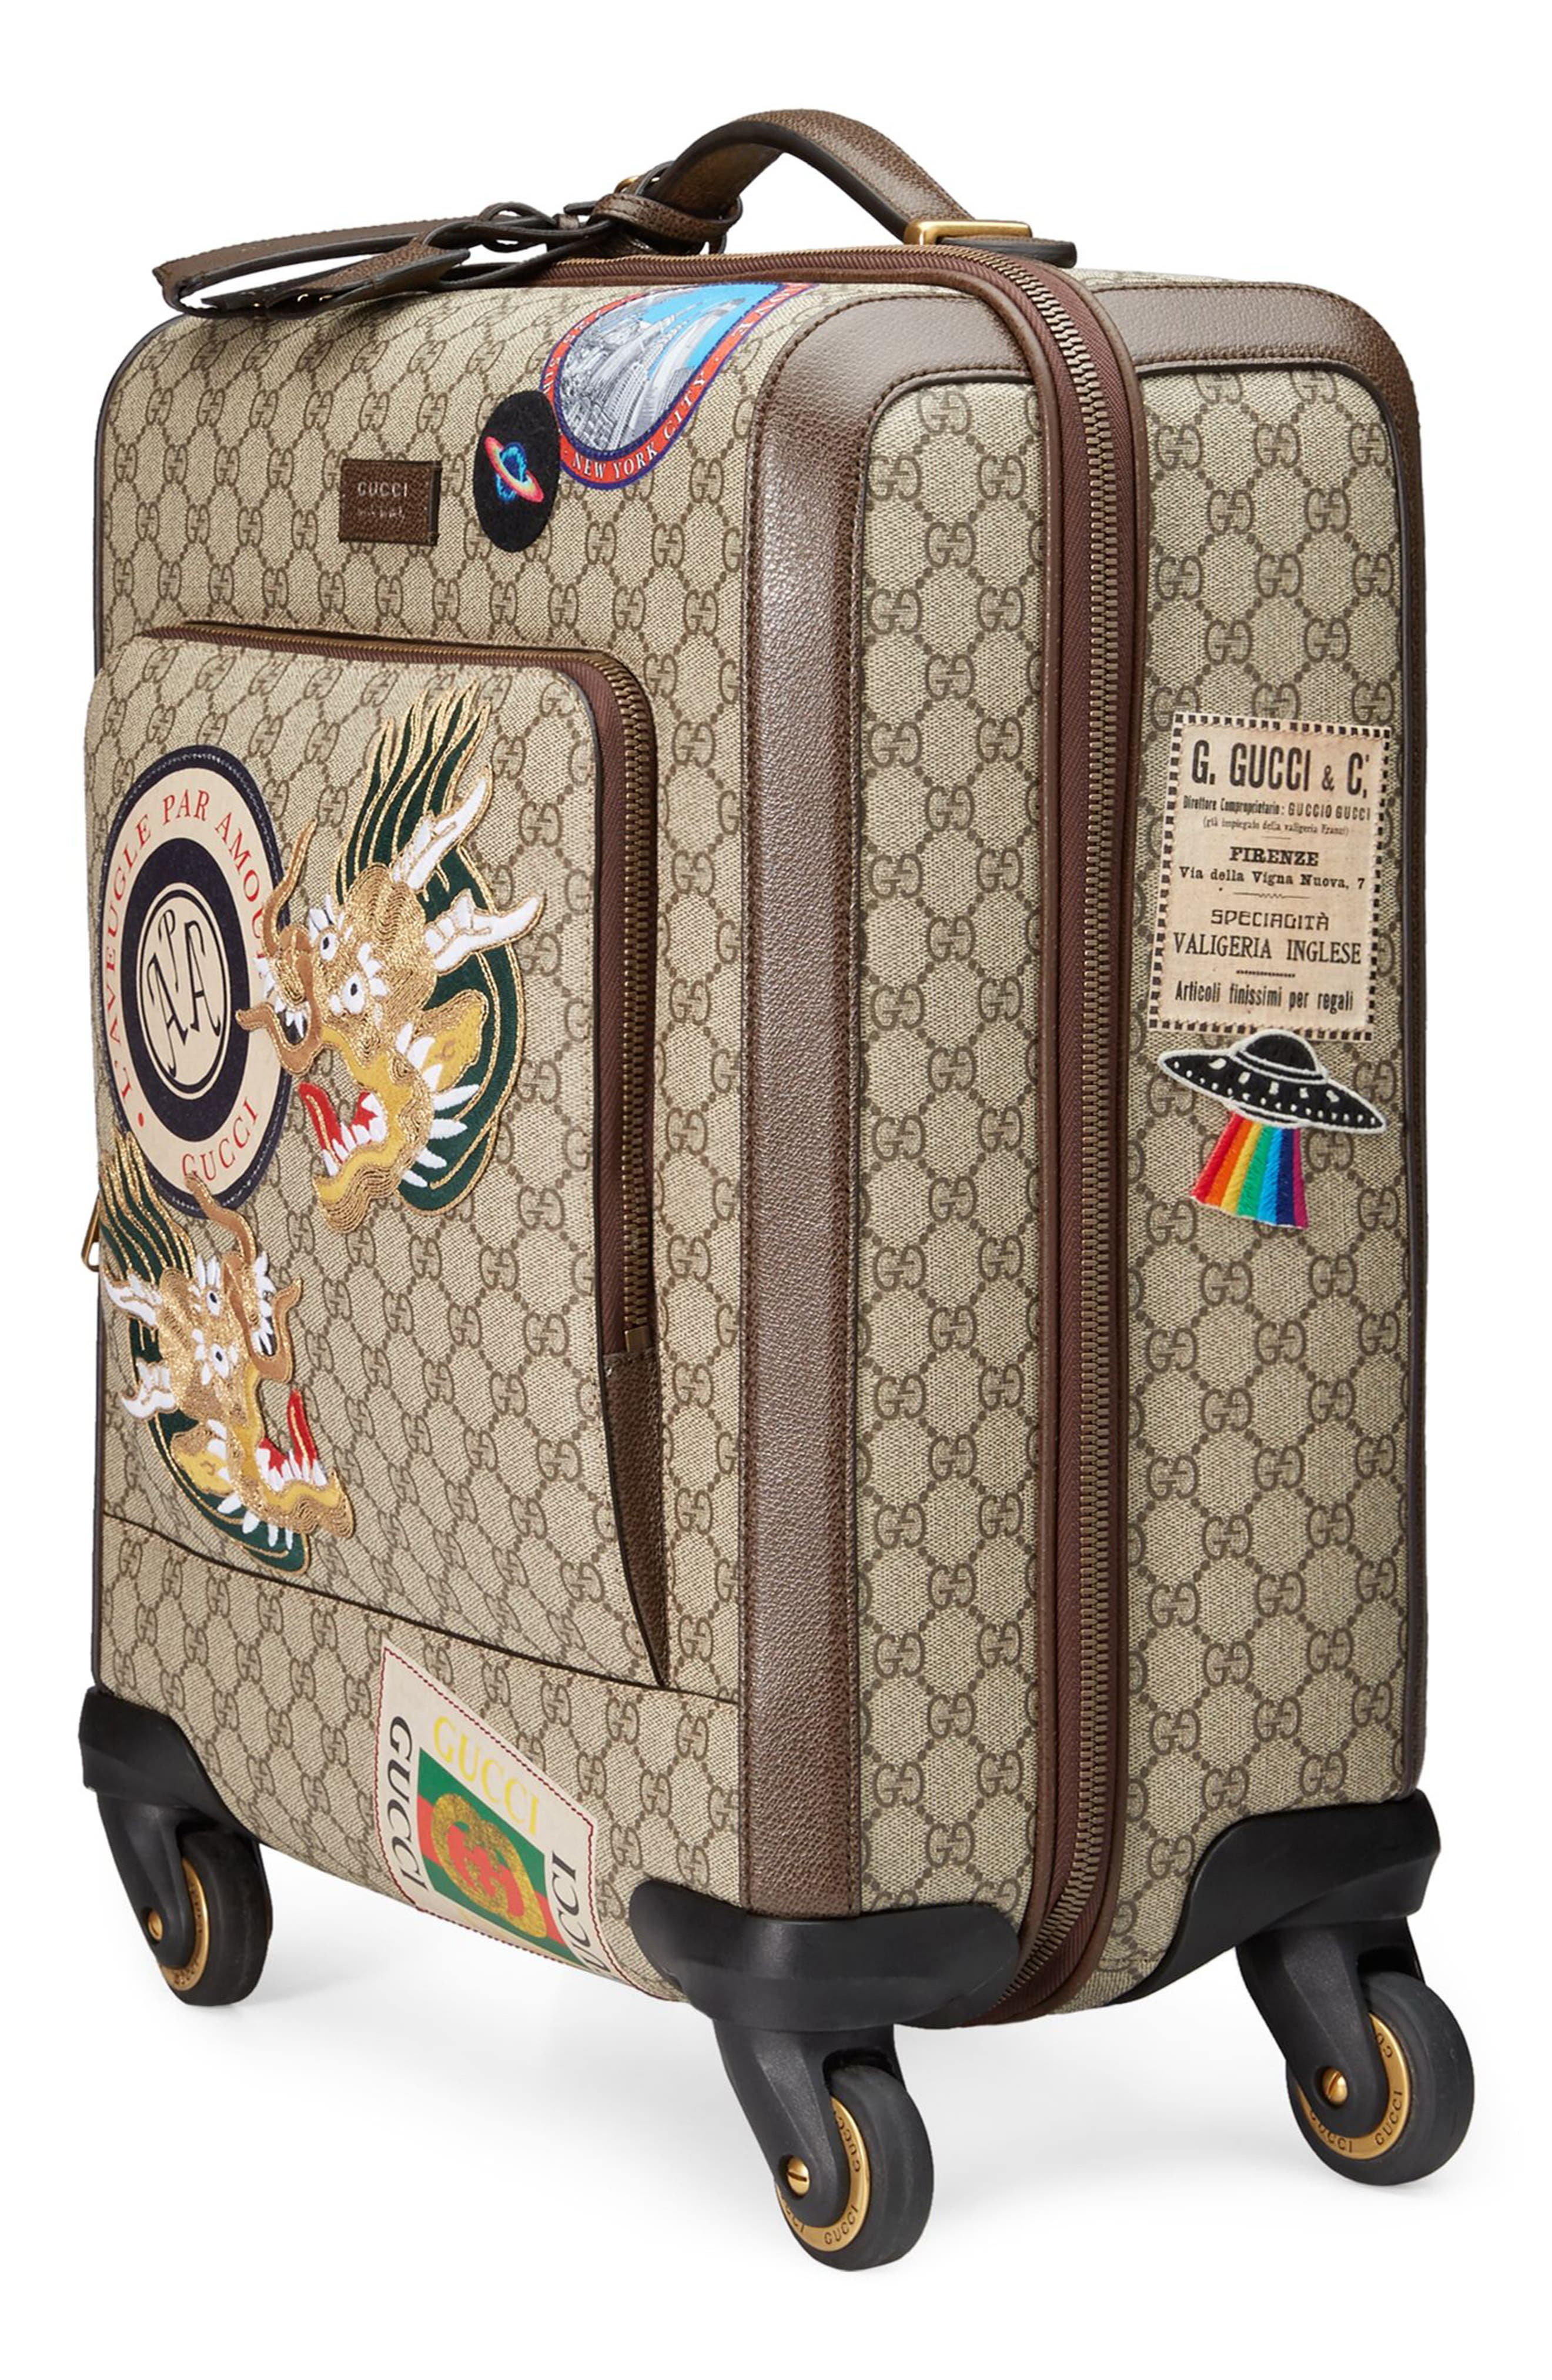 Courier GG Supreme Patches Carry-On,                             Alternate thumbnail 3, color,                             250